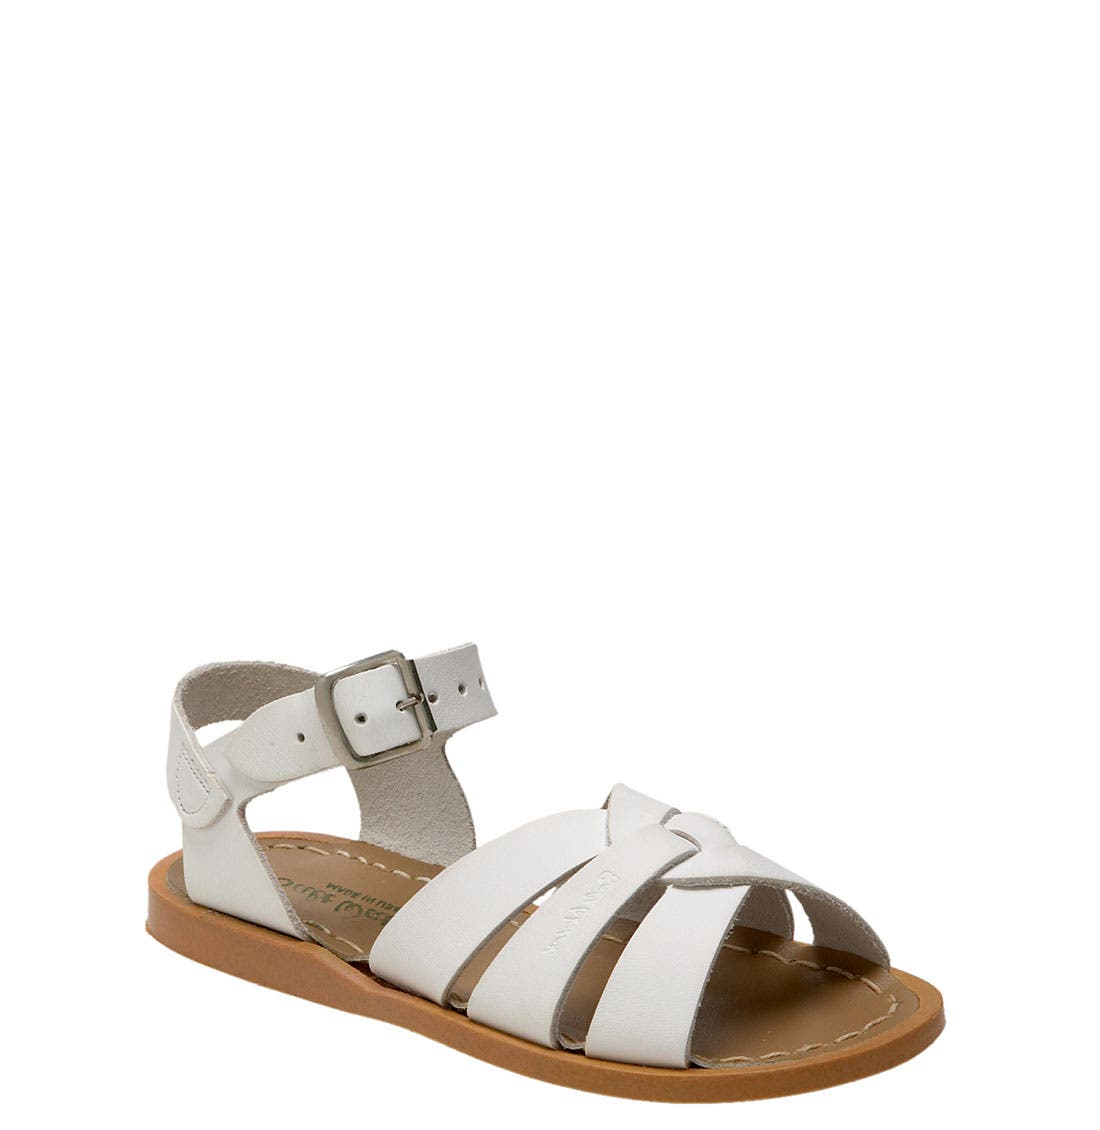 k swiss shoes malaysia sandals st thomas